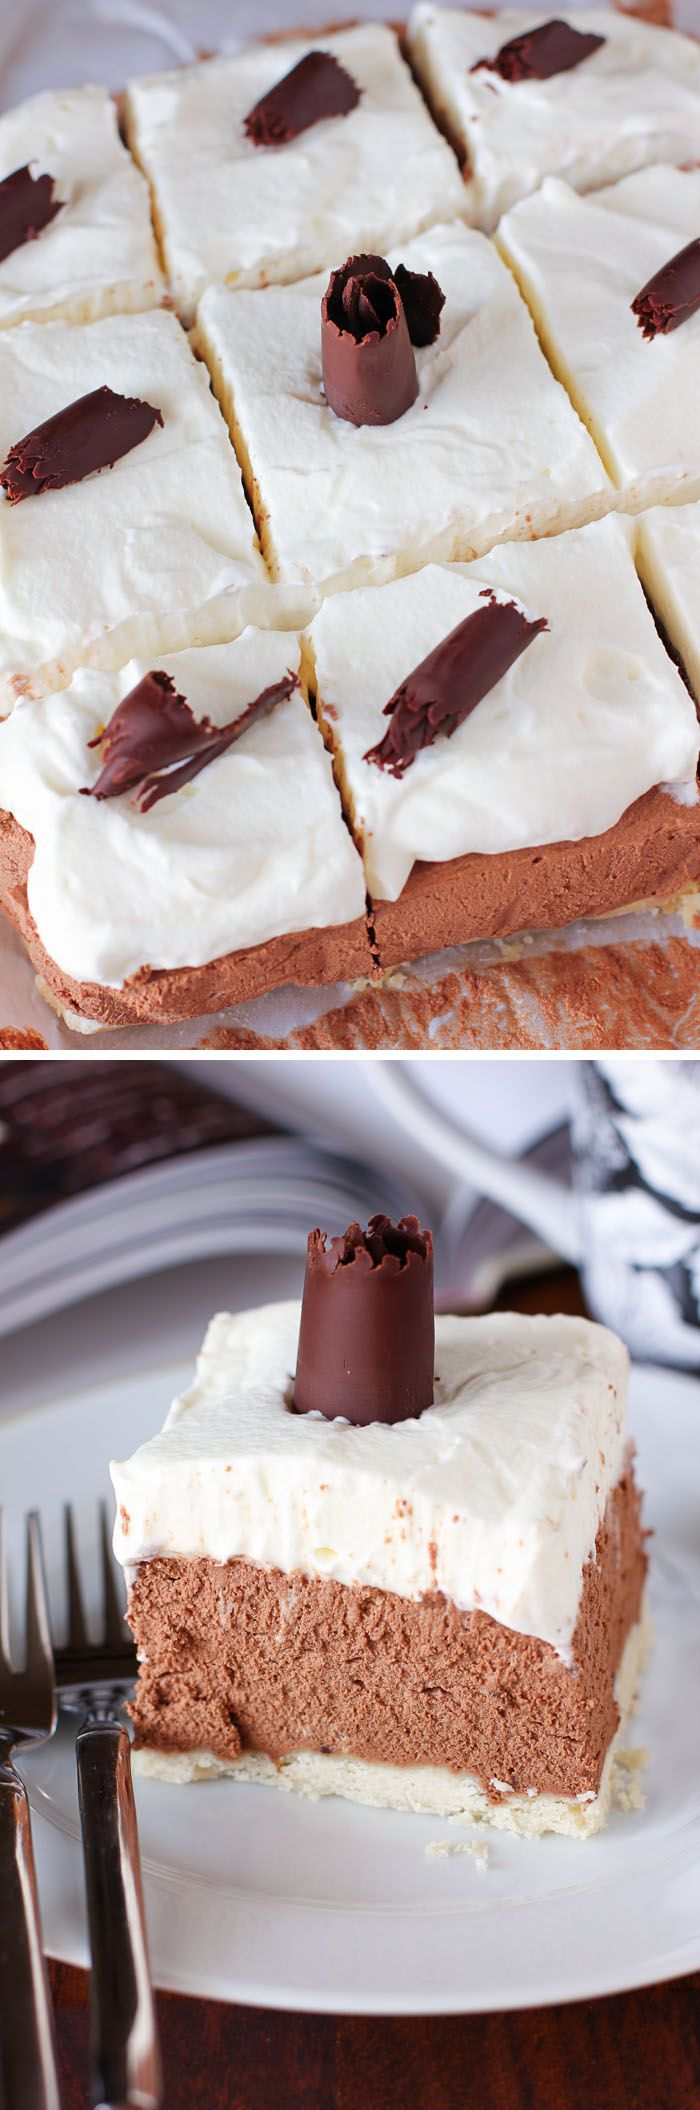 French Silk Pie Bars : These pie bars are heavenly! Full of creamy chocolate mousse and topped with fluffy whipped cream.